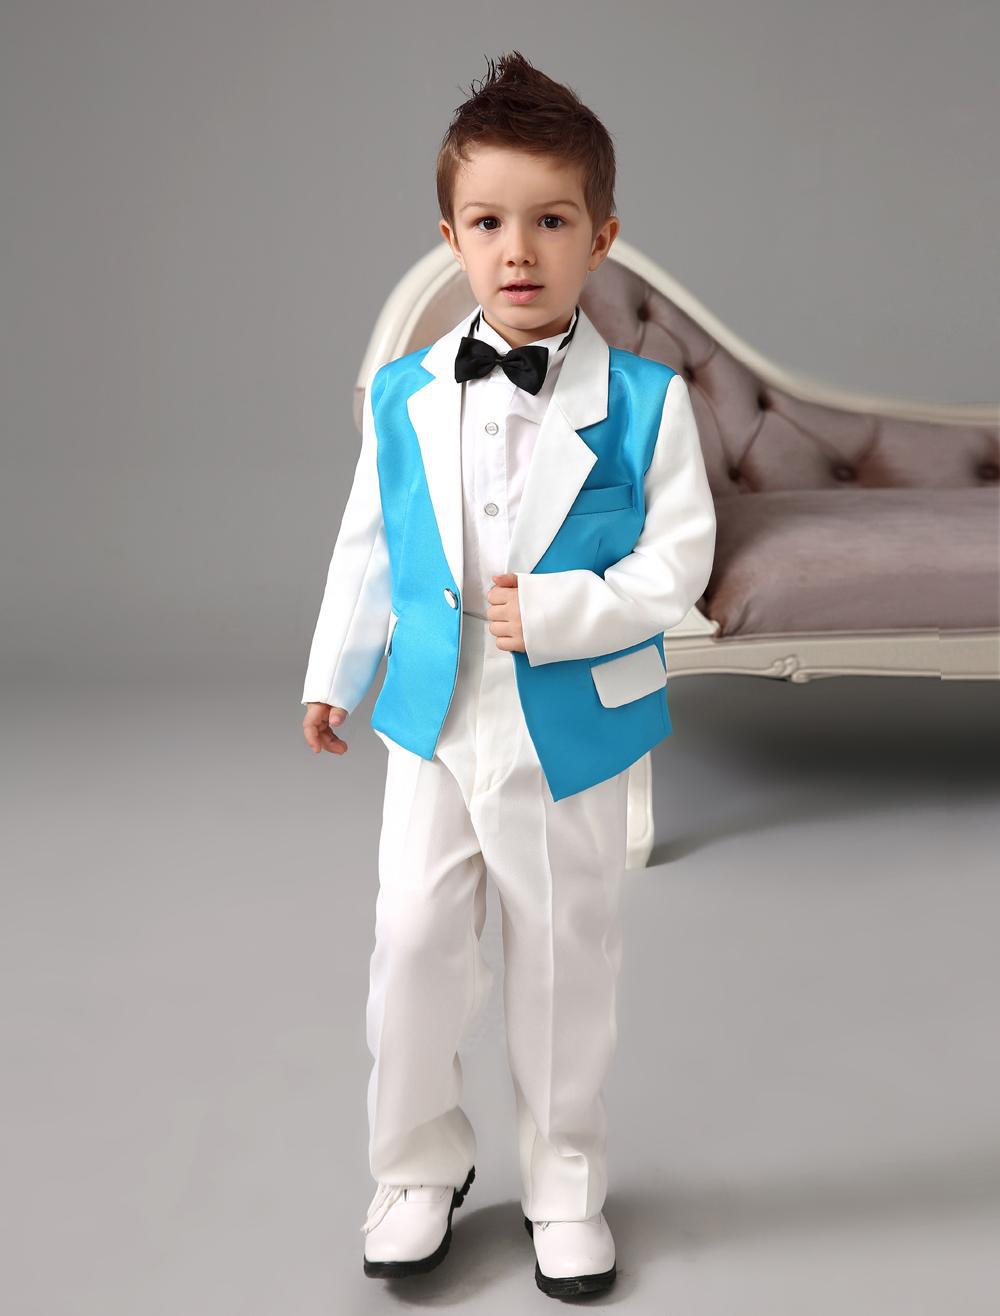 Luxurious blue and white Ring Bearer Suits cool Boys Tuxedo With Black Bow Tie kids formal dress boys suits fashion kids suits(China (Mainland))